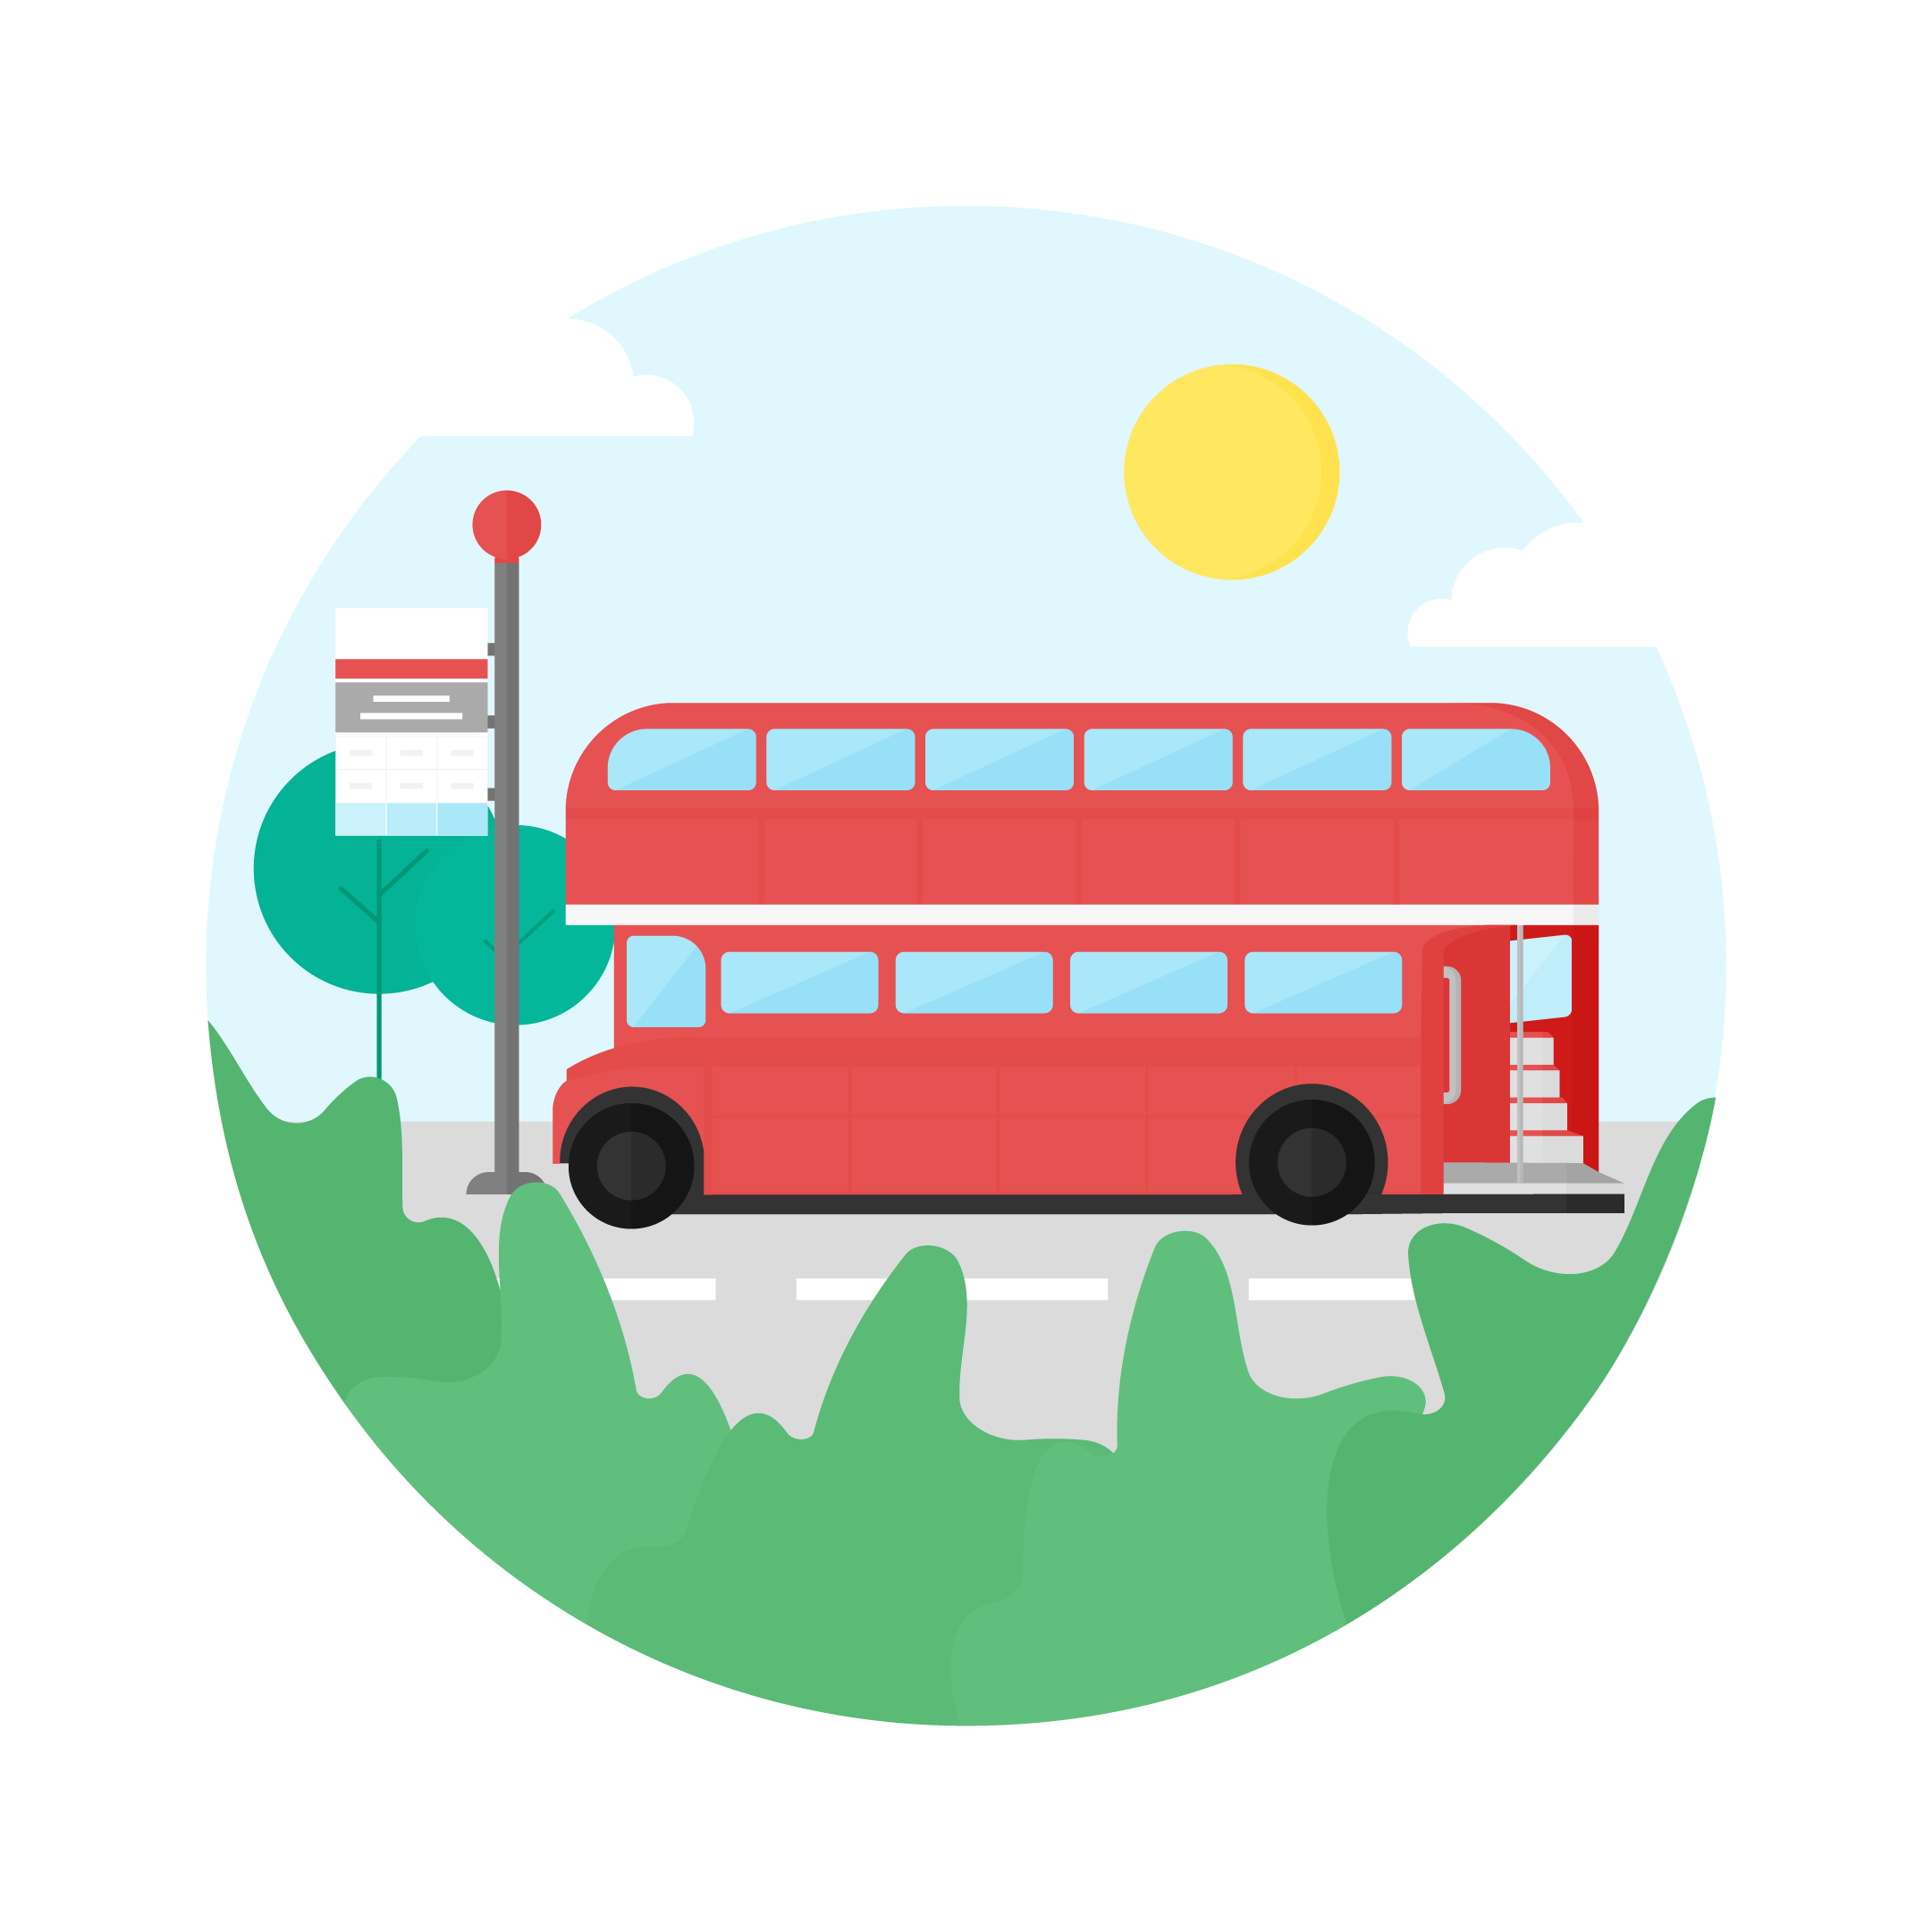 Vector illustration of sunny day bus stop scene with the old double-decker bus in London in a flat design style